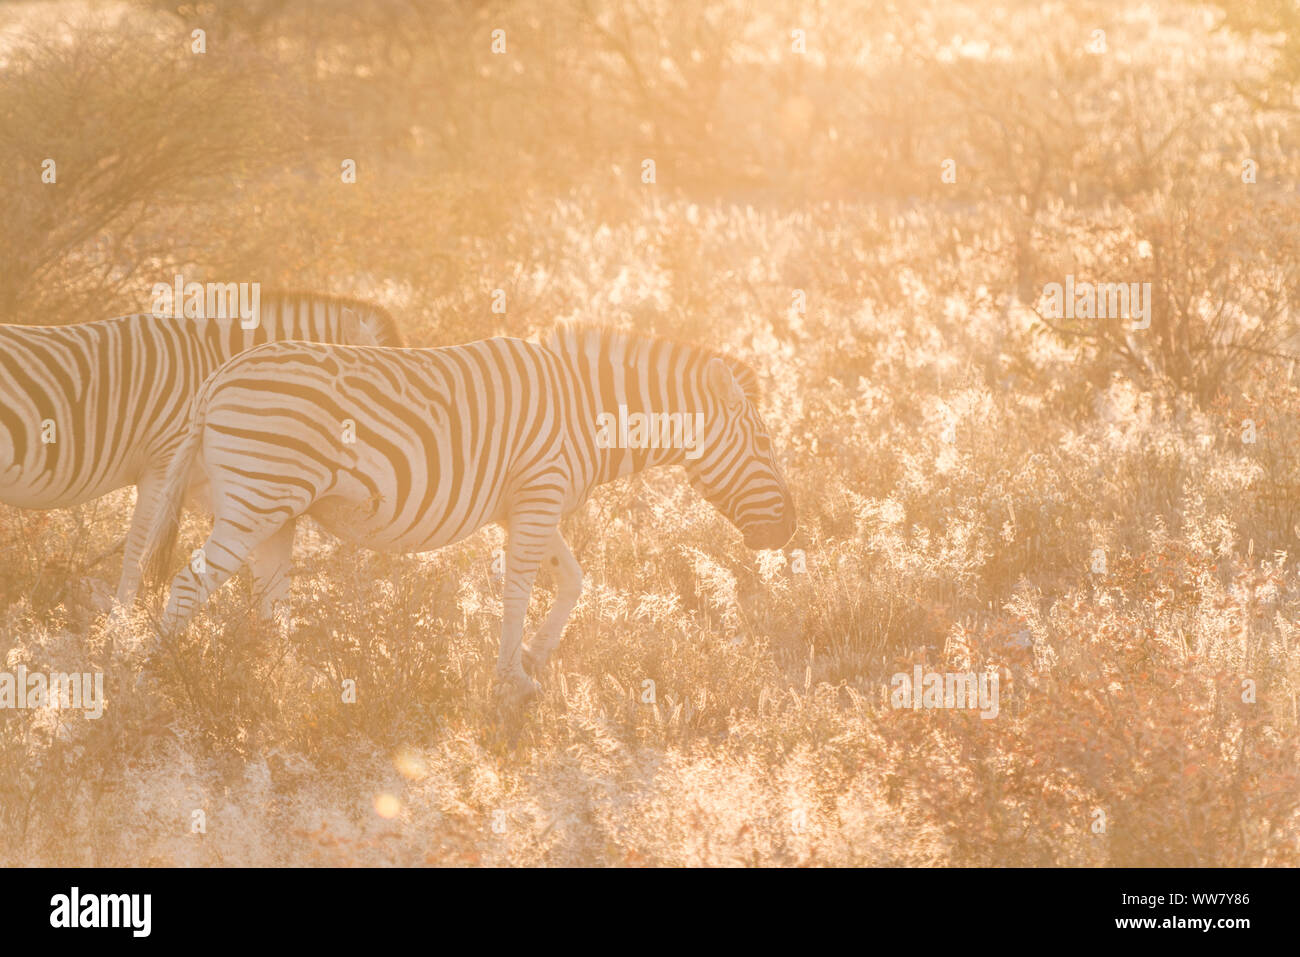 Two zebras in the early sunlight in the savanna in Namibia, Africa Stock Photo